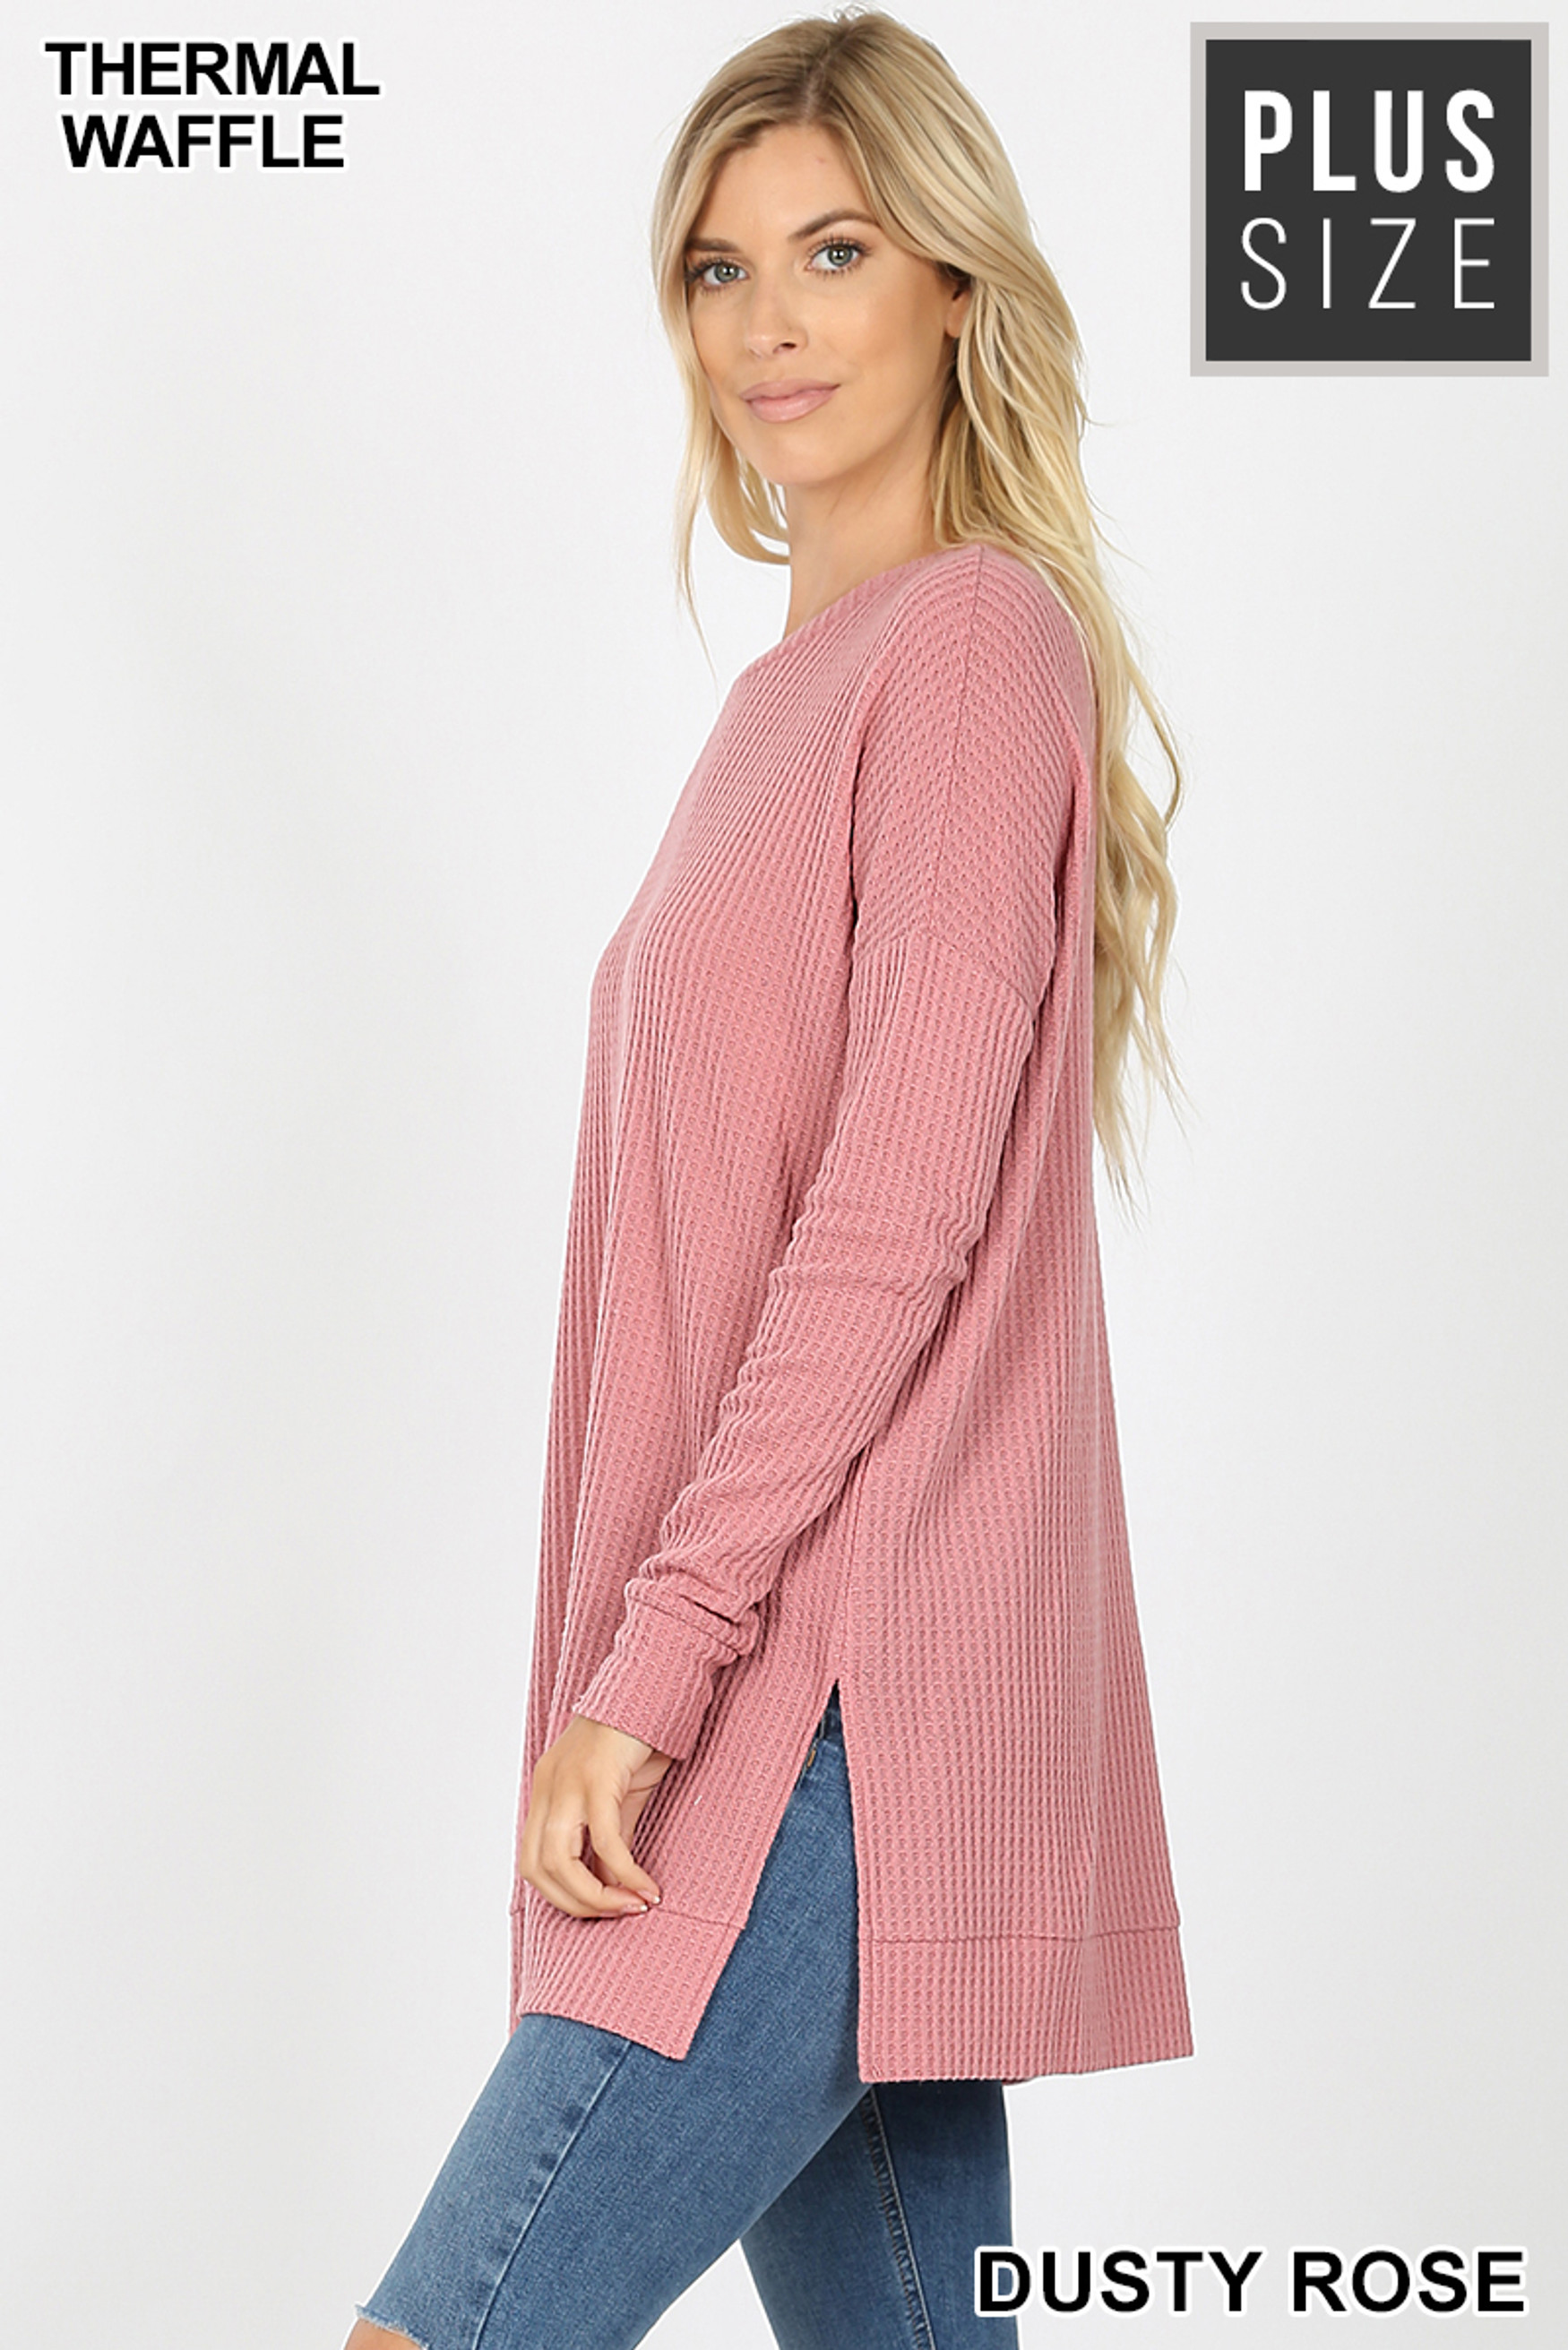 Left side image of Dusty Rose Brushed Thermal Waffle Knit Round Neck Plus Size Sweater